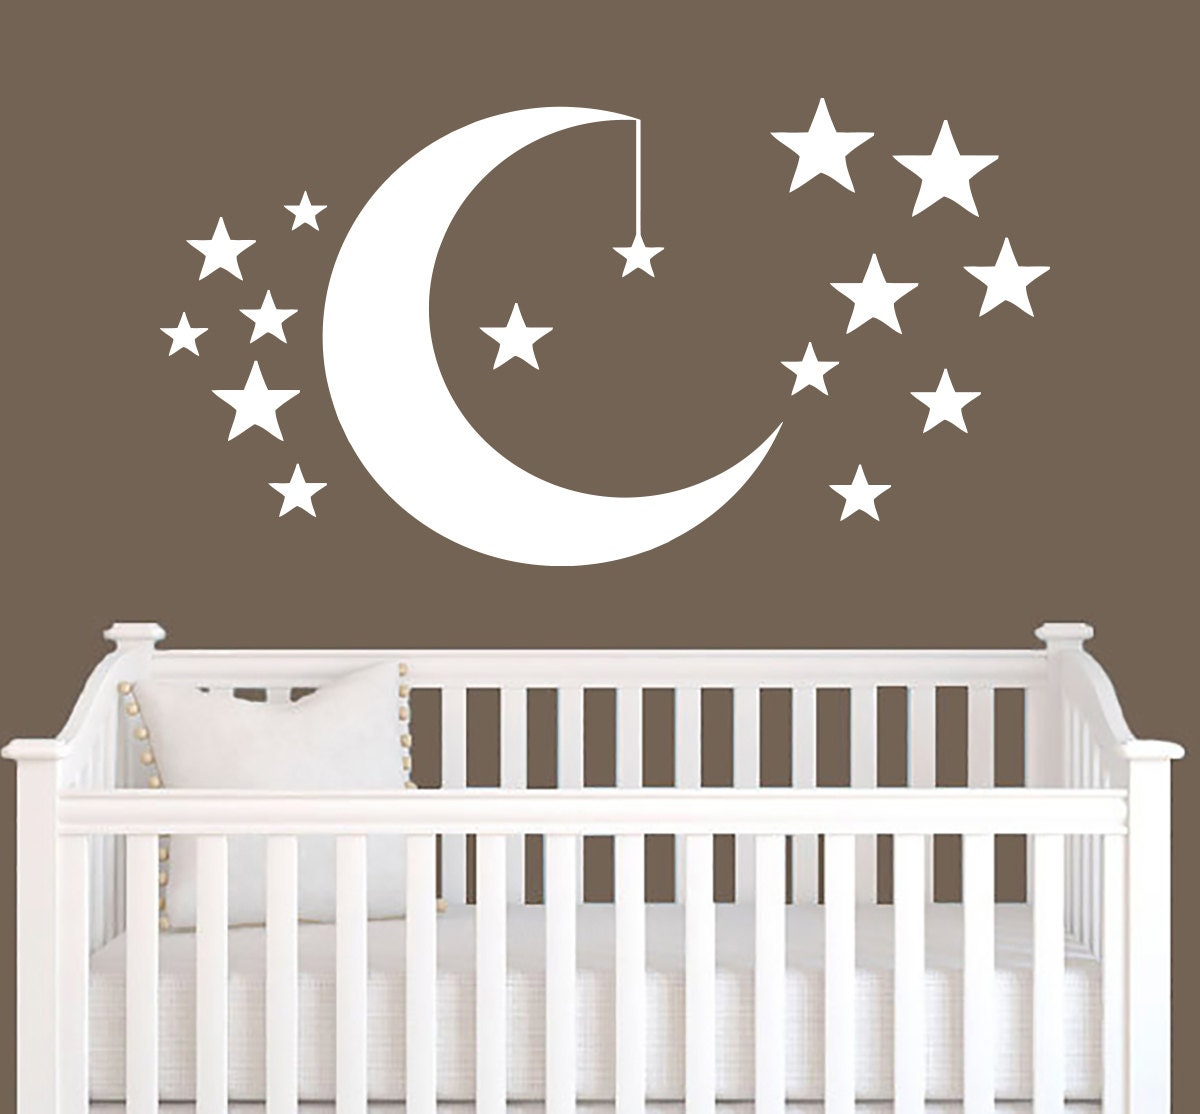 moon and stars wall decal vinyl sticker by trendywalldecals. Black Bedroom Furniture Sets. Home Design Ideas